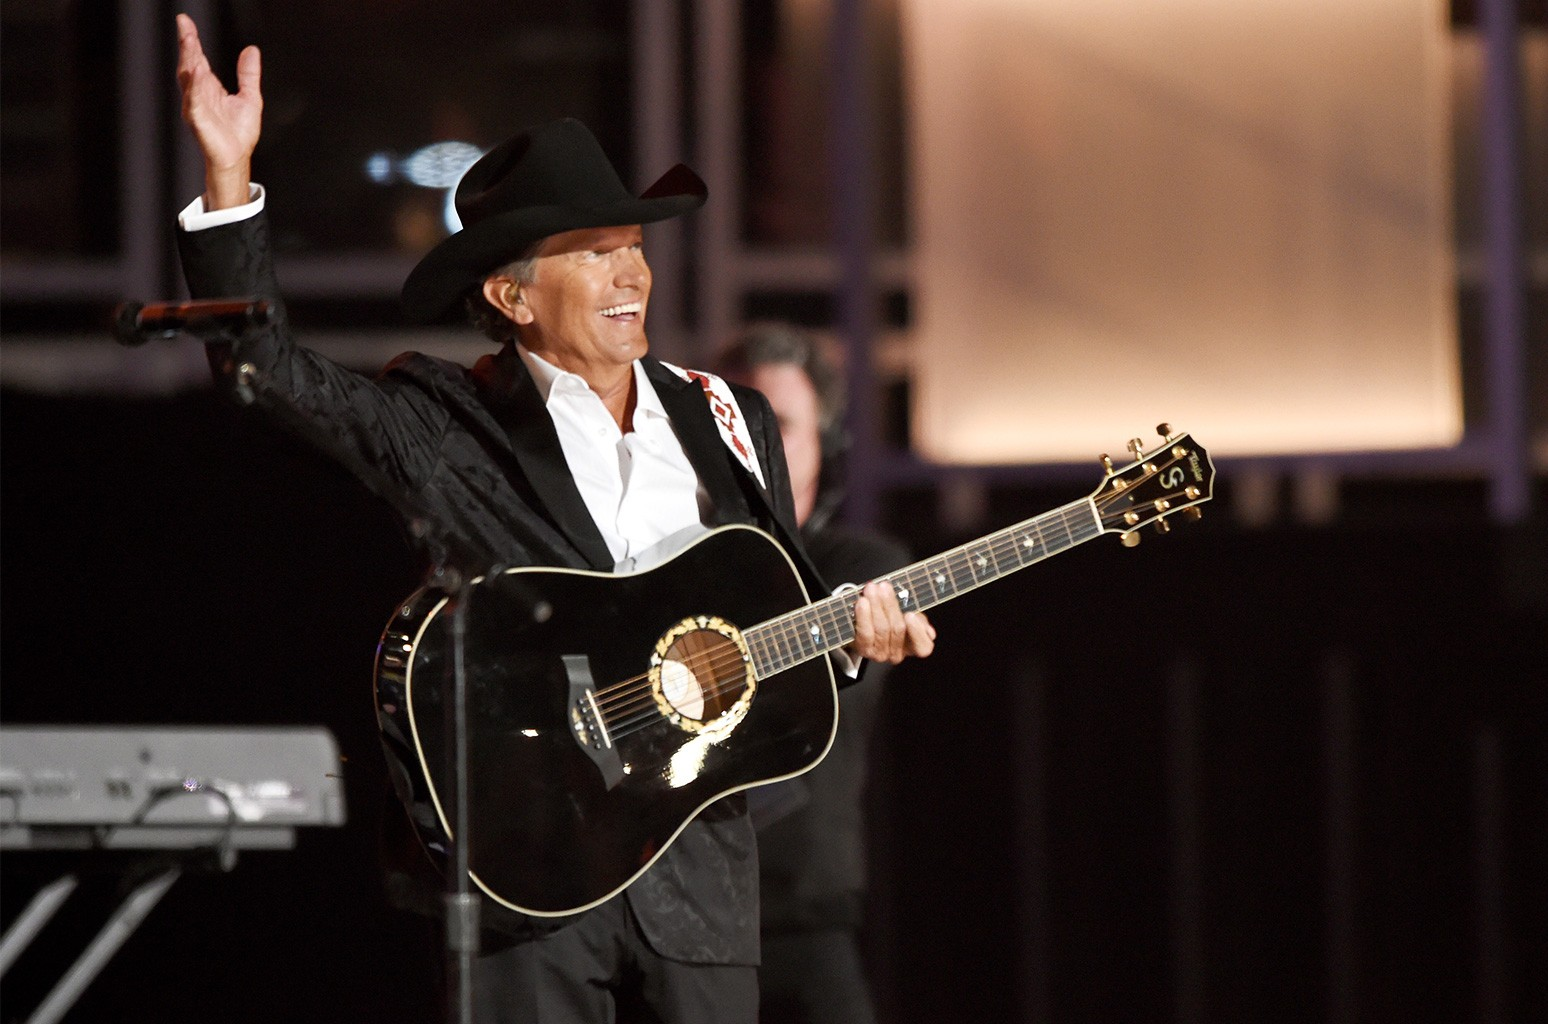 George Strait accepts the 50th Anniversary Milestone Award onstage during the 50th Academy of Country Music Awards at AT&T Stadium on April 19, 2015 in Arlington, Texas.